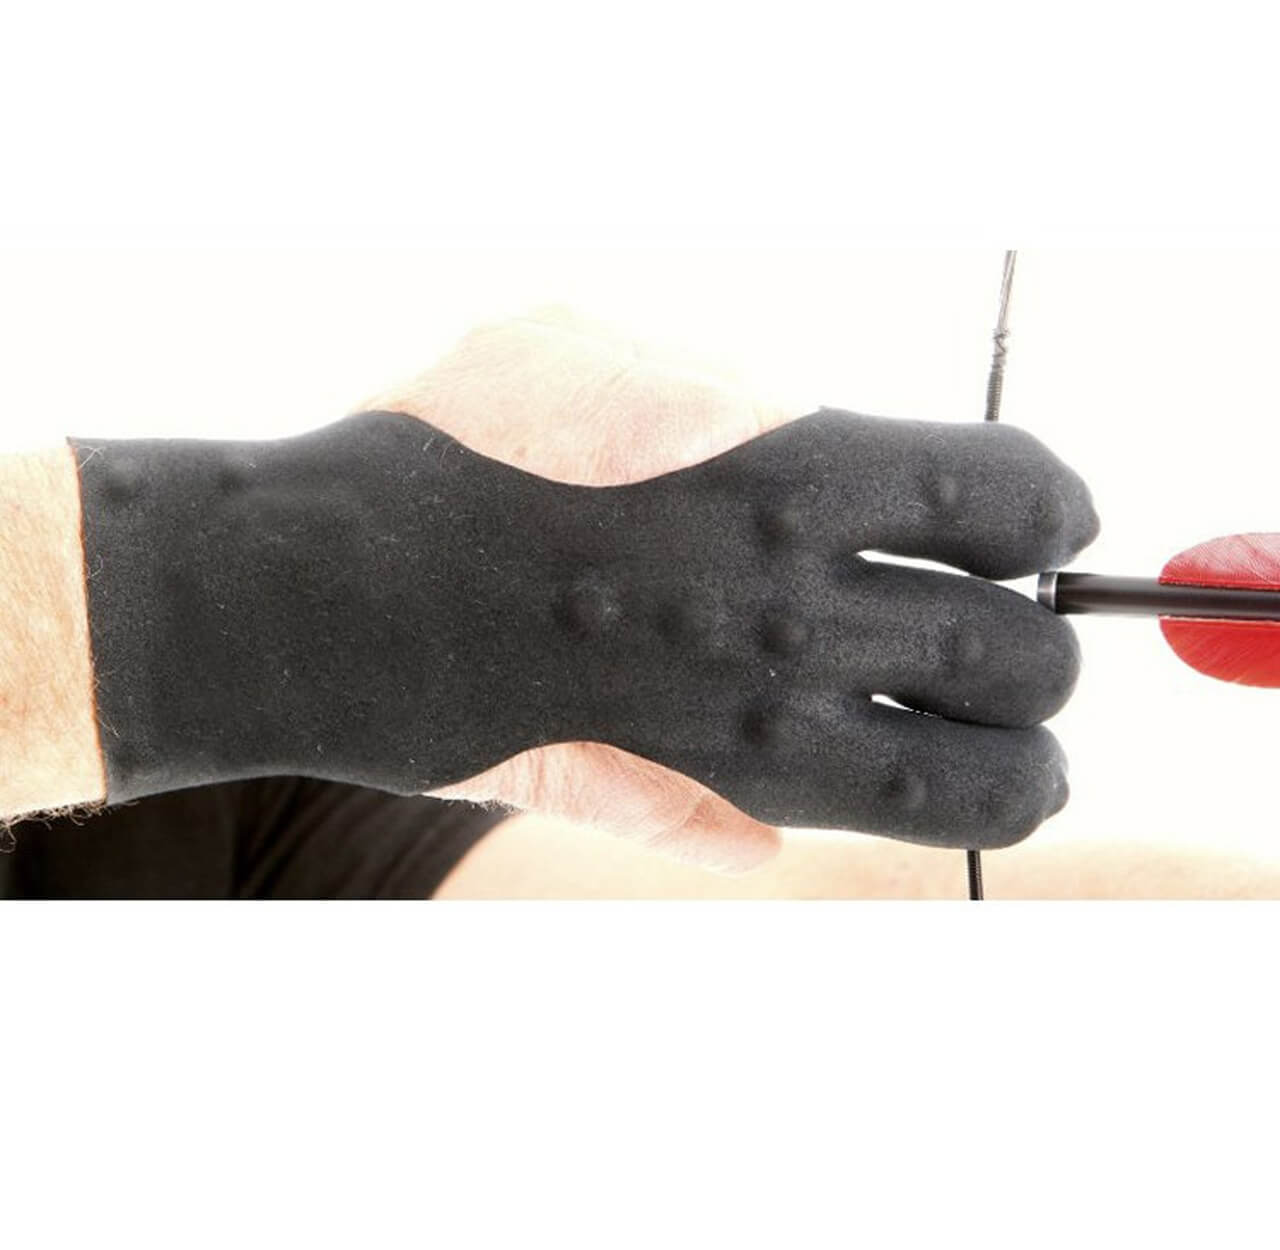 ARCHERS REAL LEATHER SHOOTING 4 FINGER GLOVE BLACK /& CHOCOLATE BROWN